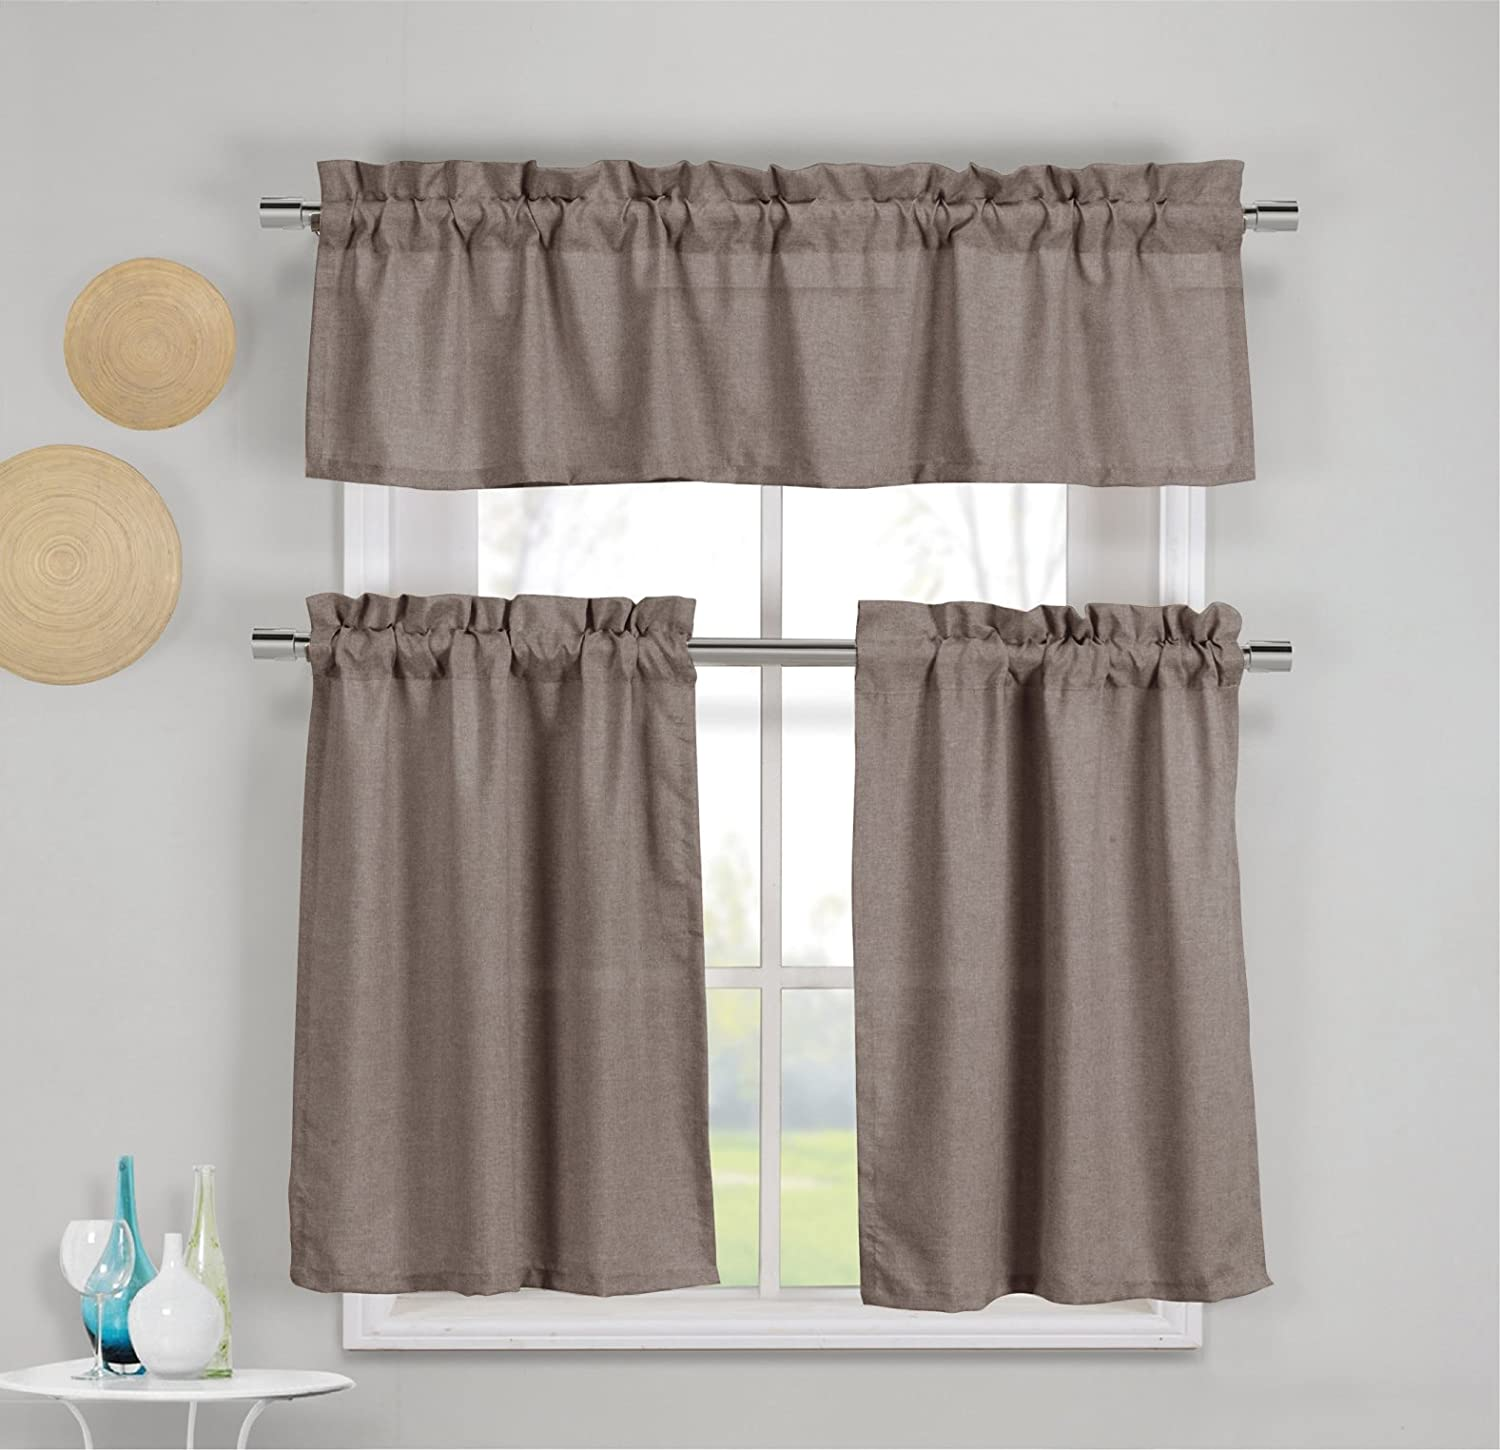 Amazon.com: 3 Piece Faux Cotton Kitchen Window Curtain Panel Set with 1 Valance and 2 Tier Panel Curtains (Wine Red): Home & Kitchen